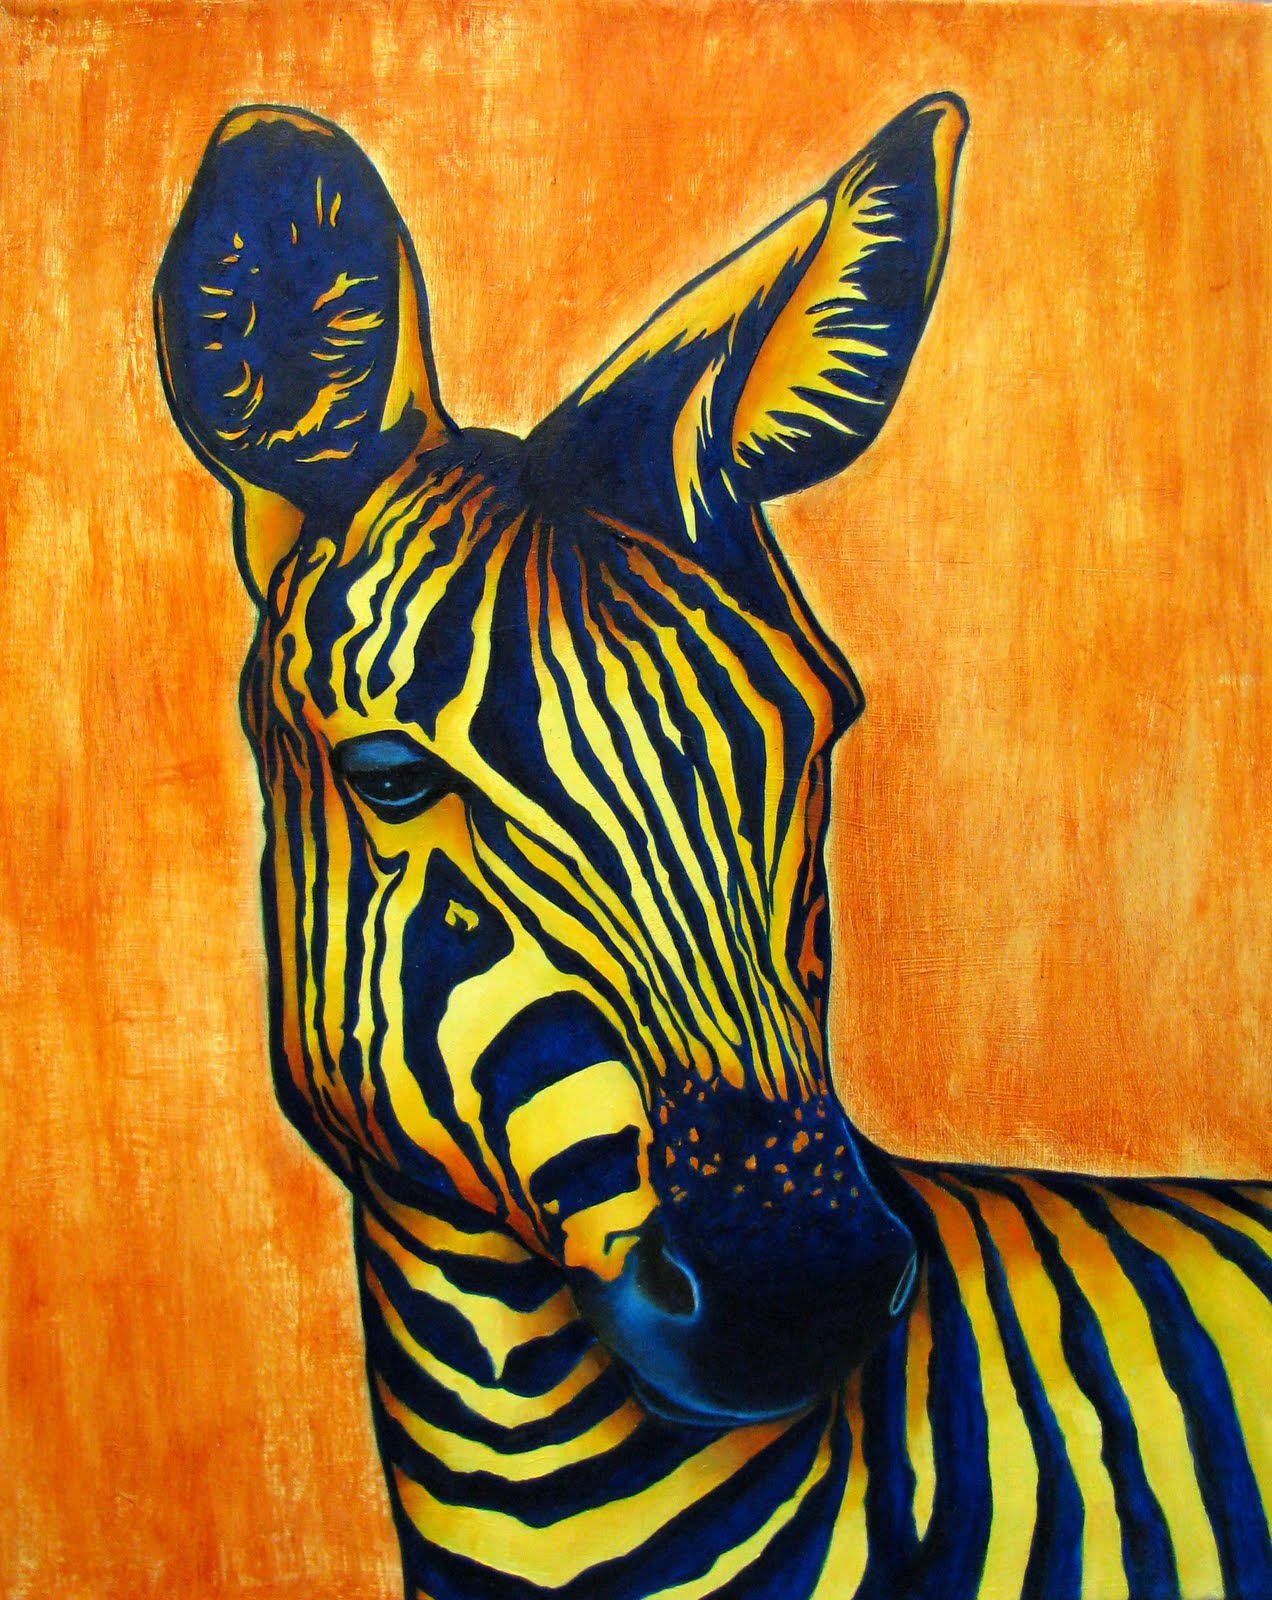 zebra oil painting - photo #30